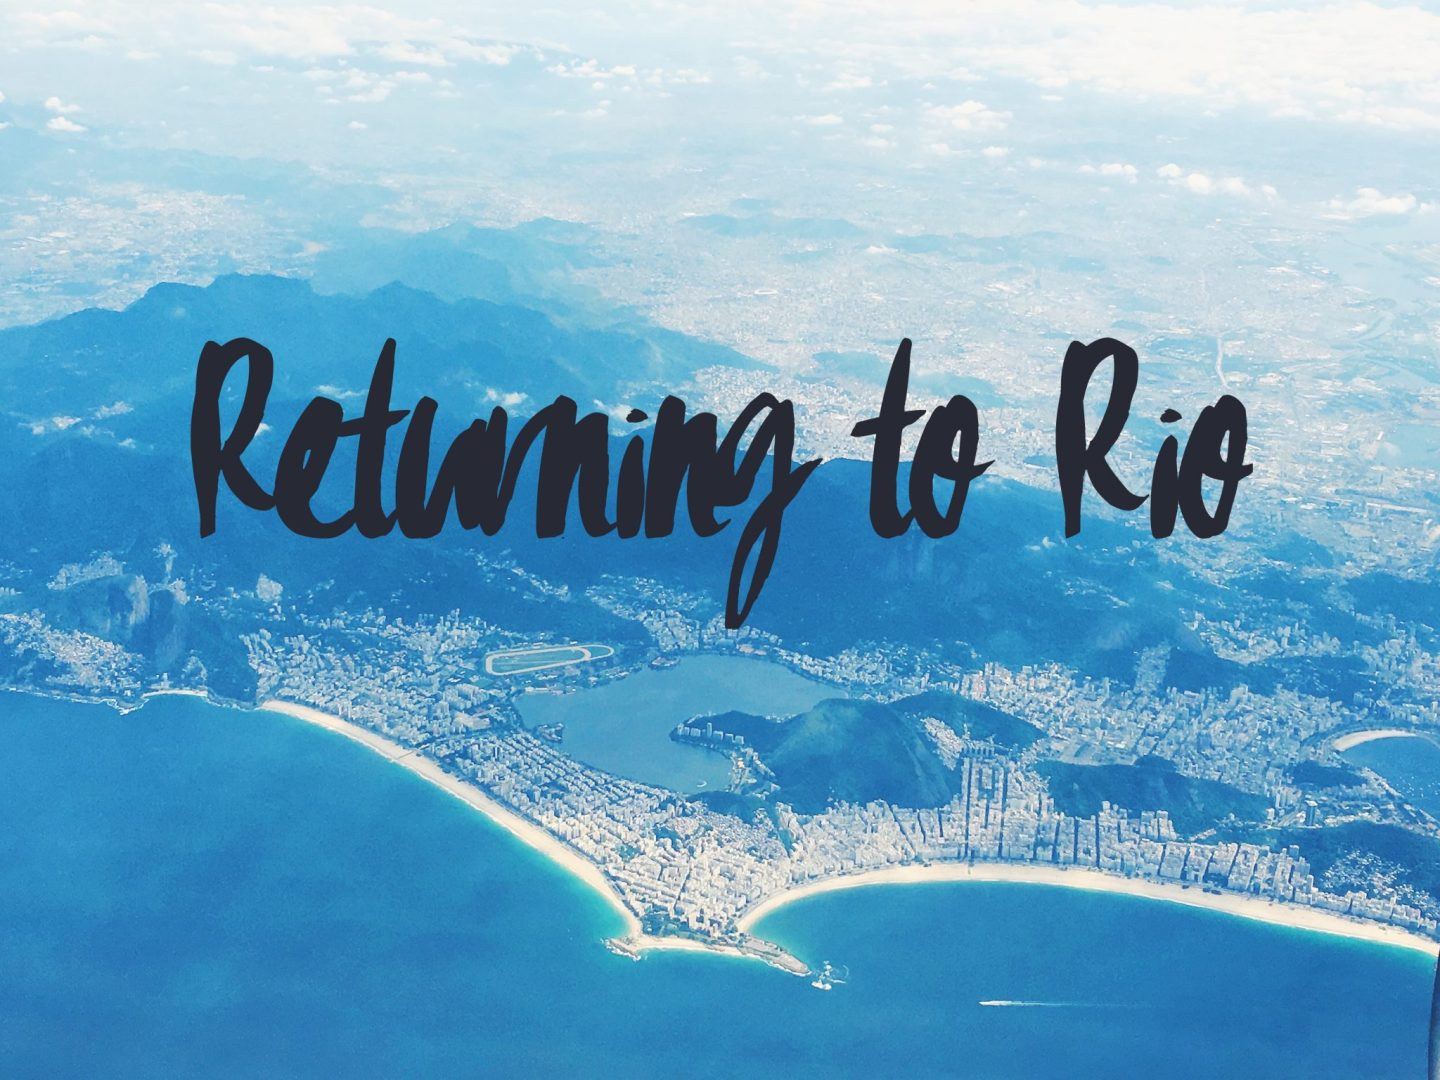 Returning to Rio